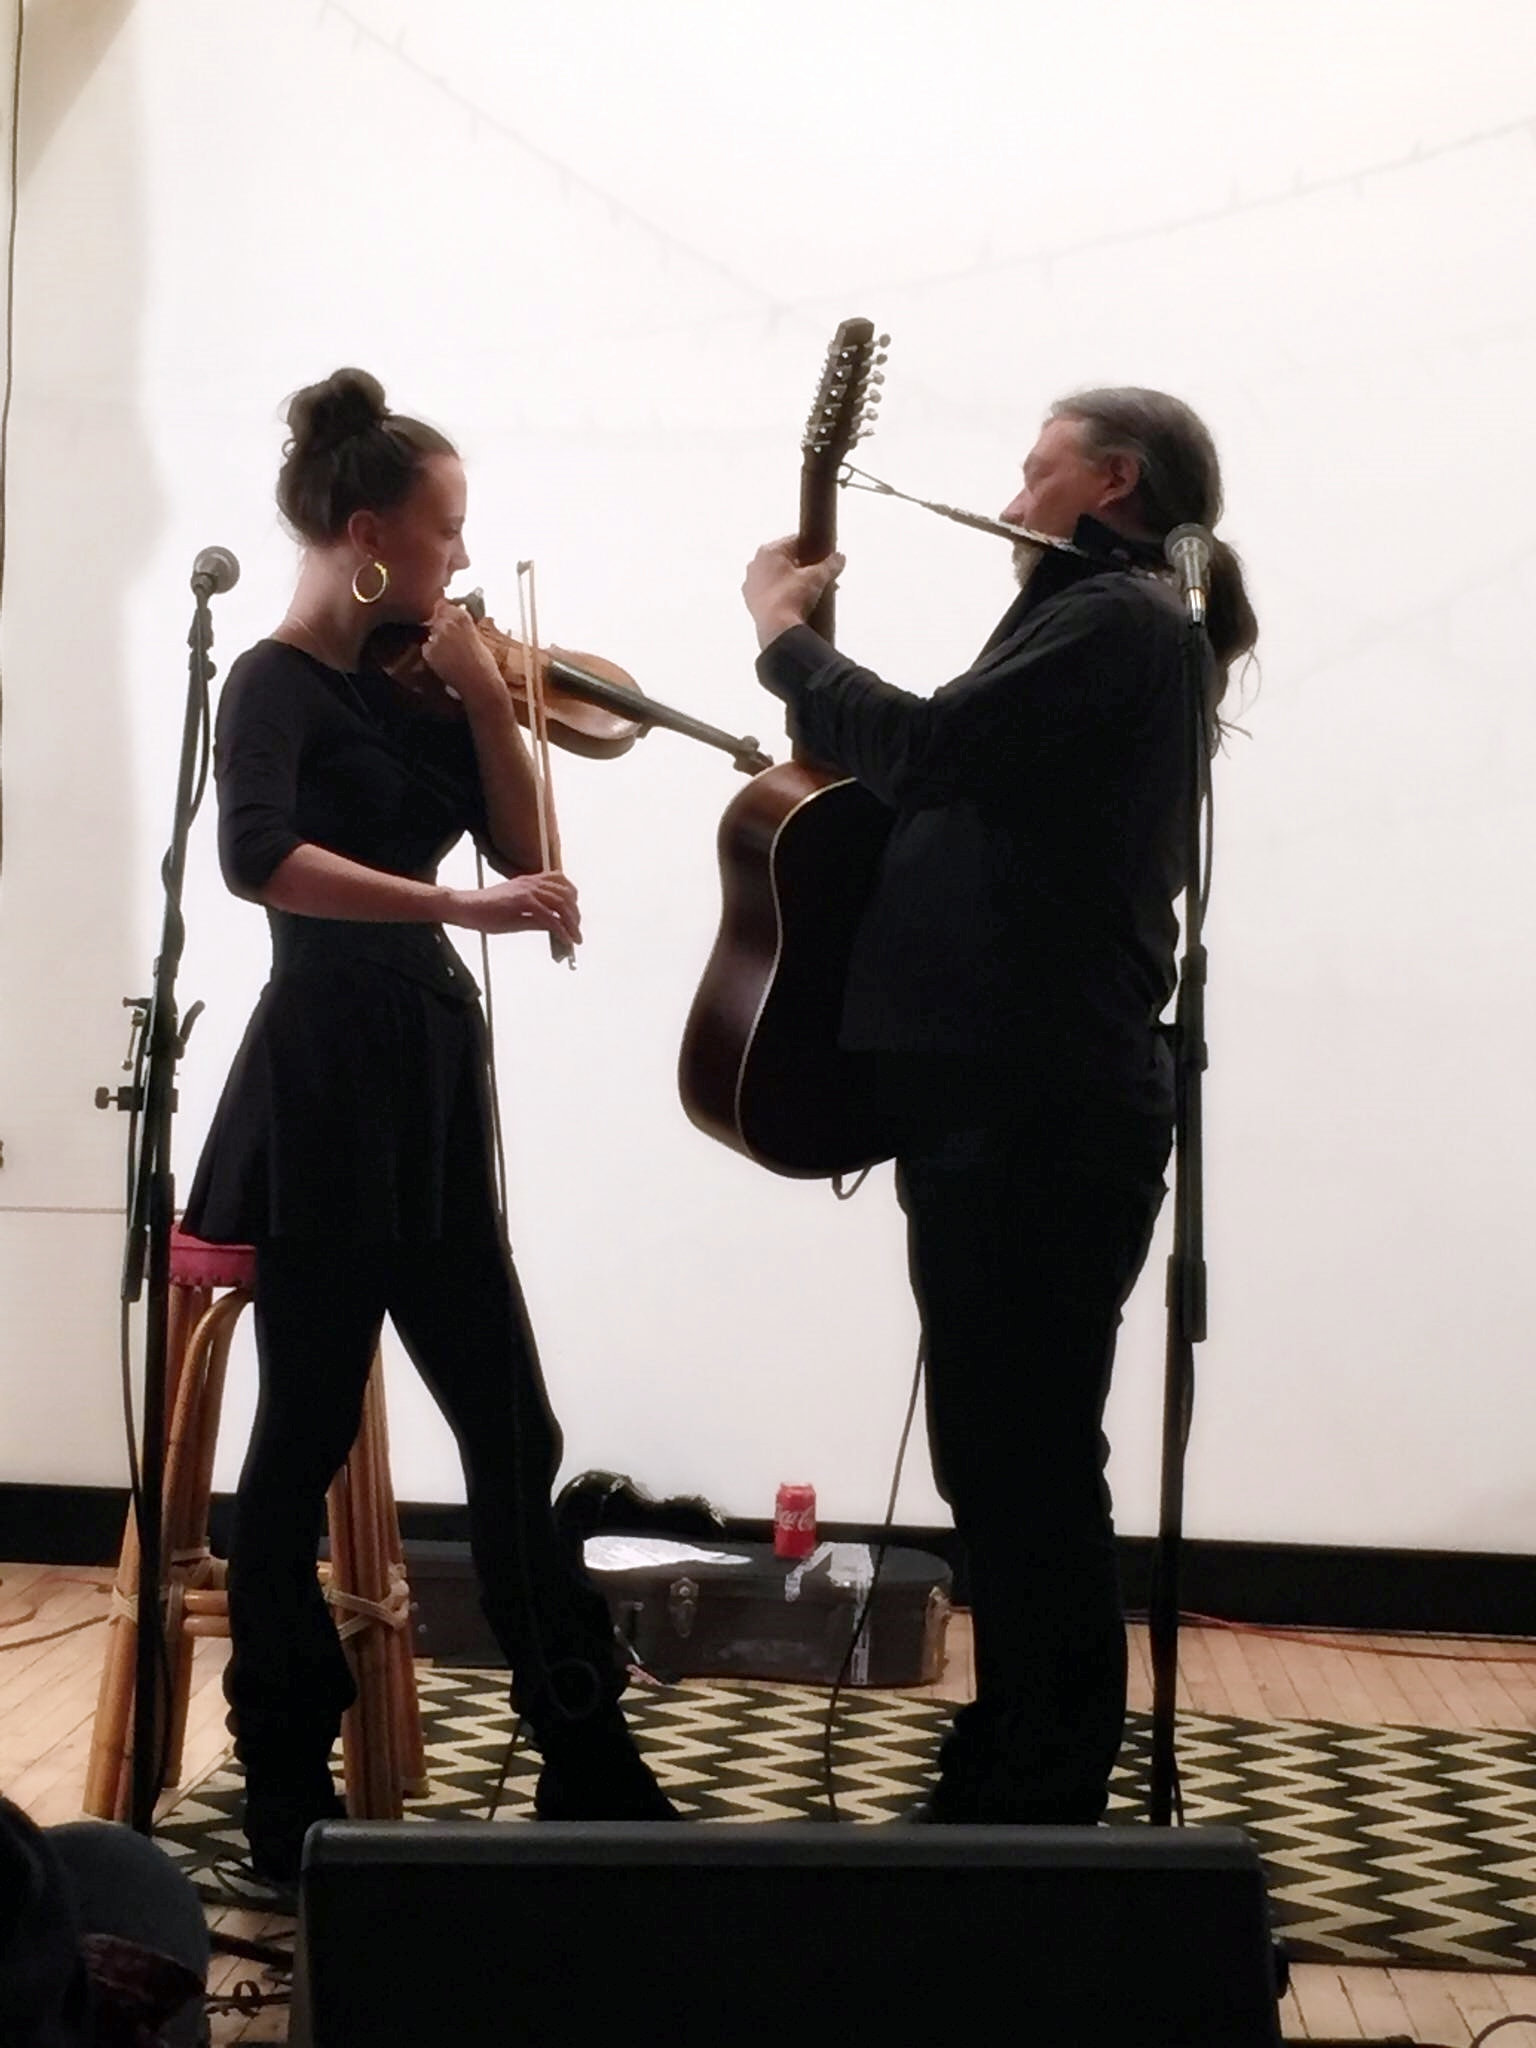 Olivia Willson-Piper (violin) and Marty Willson-Piper, Get Hip Recordings, Pittsburgh - Photo: Jeff Binczyk